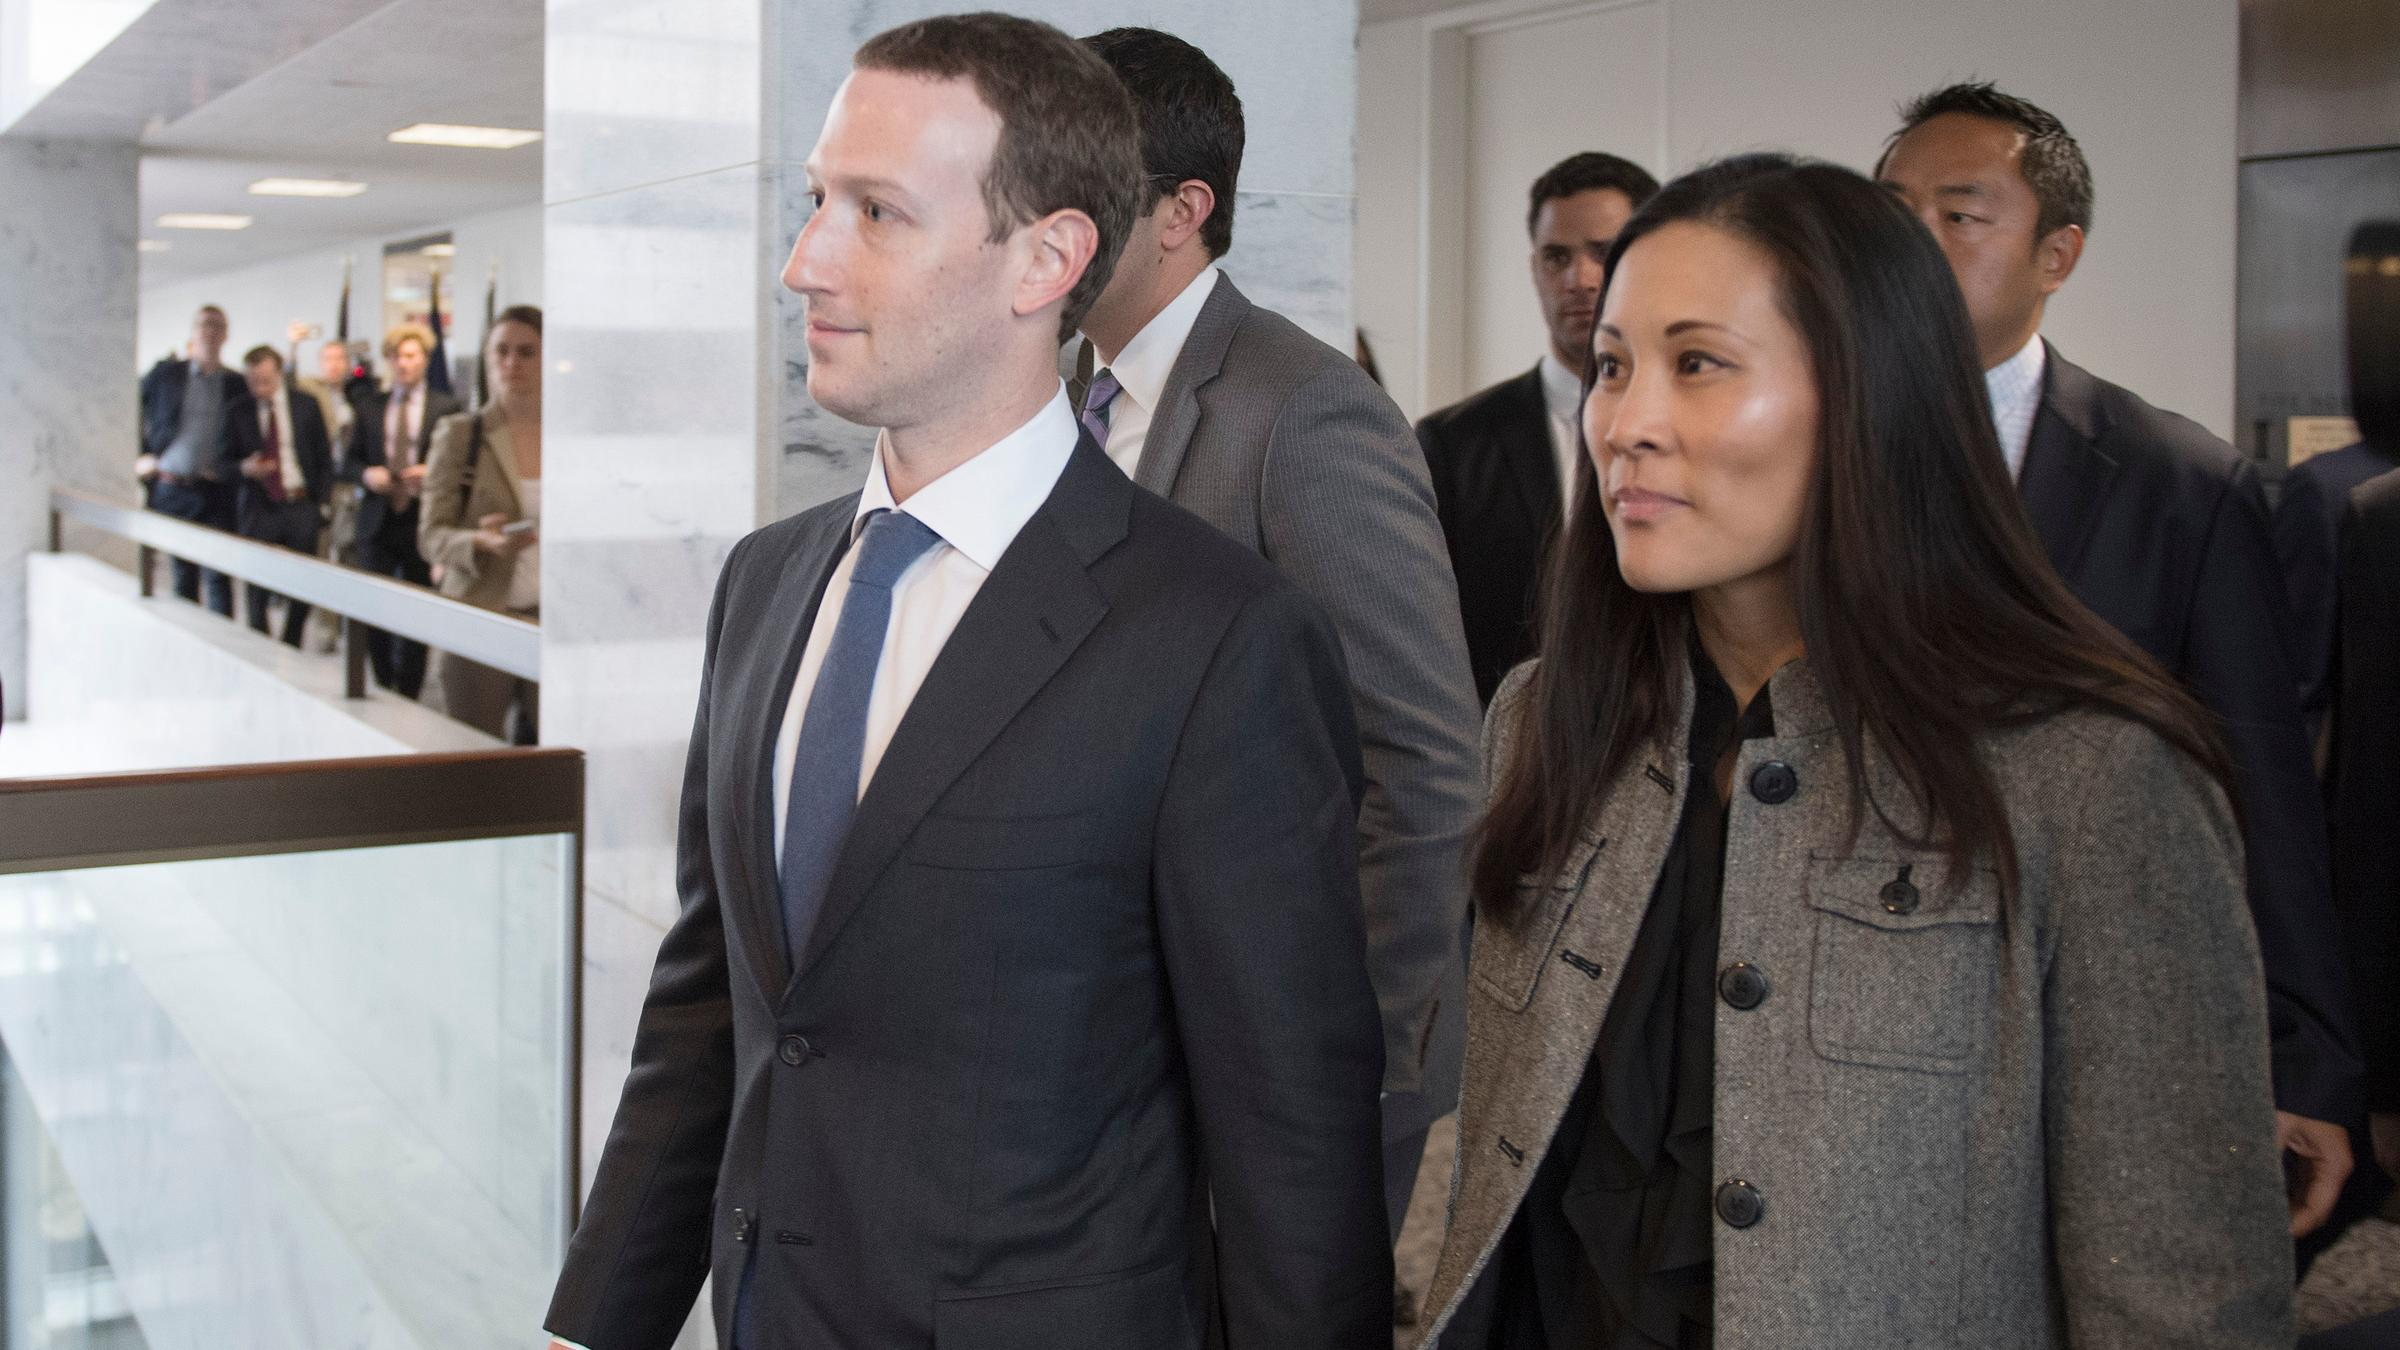 Zuckerberg faces Senate hearing but little hope for action